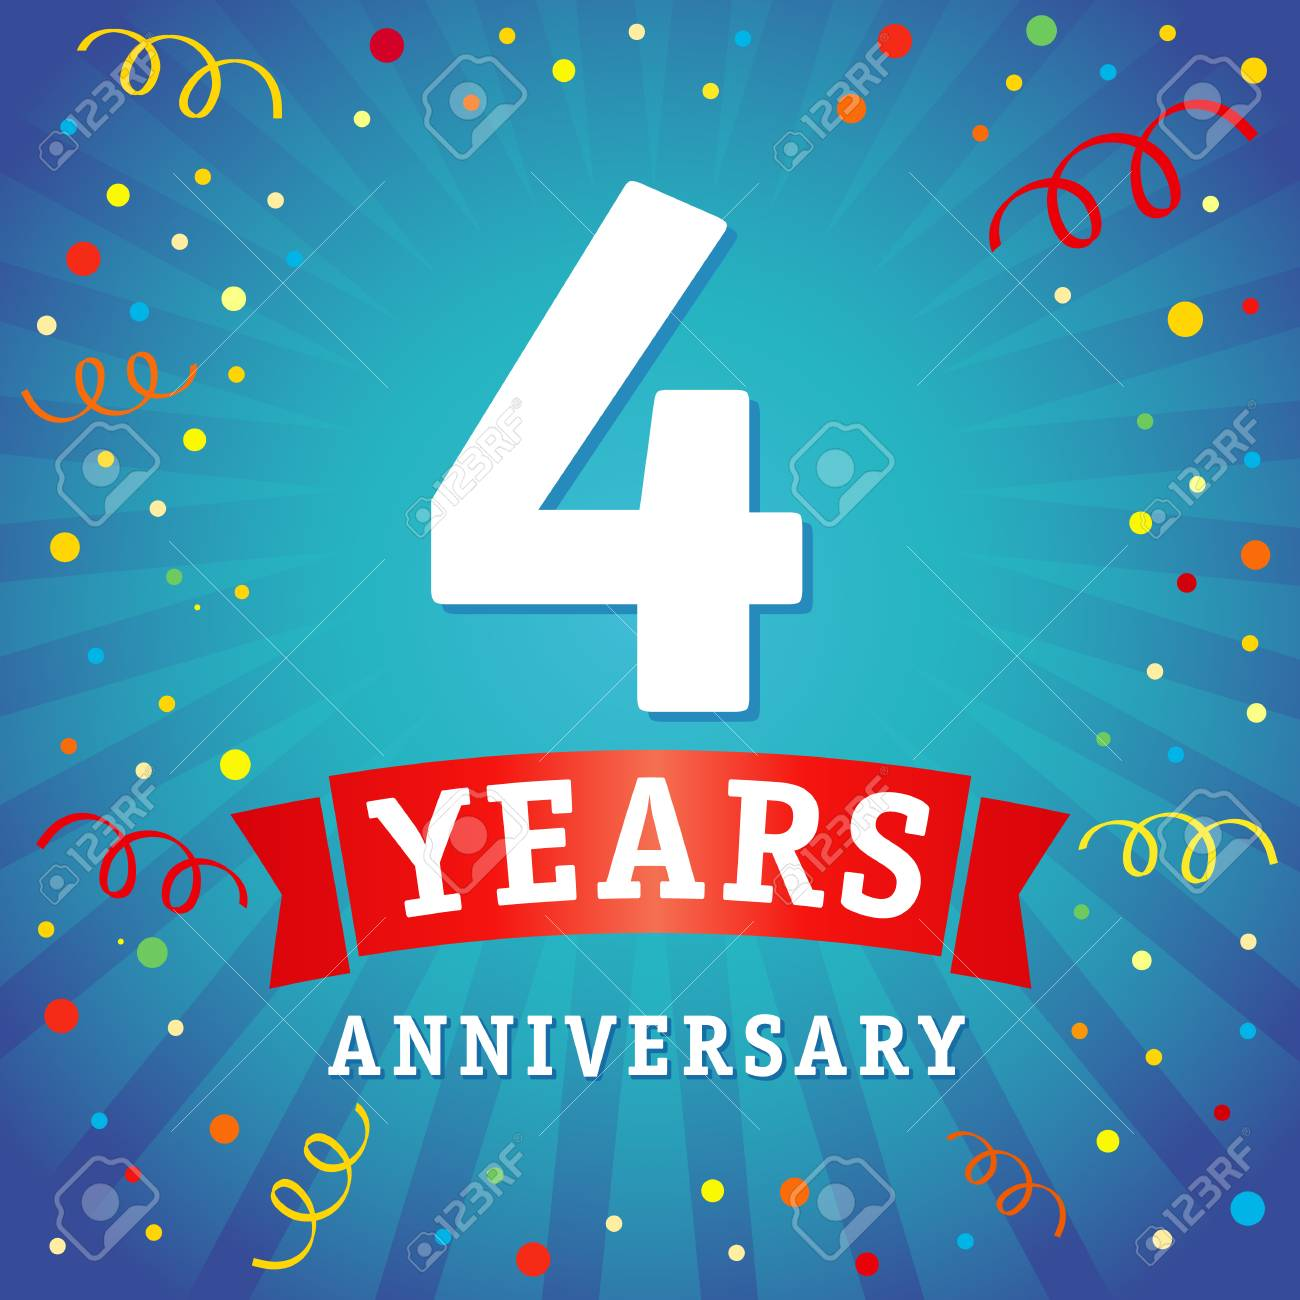 4 Years Anniversary Logo Celebration Card 4th Anniversary Anniversary Royalty Free Cliparts Vectors And Stock Illustration Image 81961778